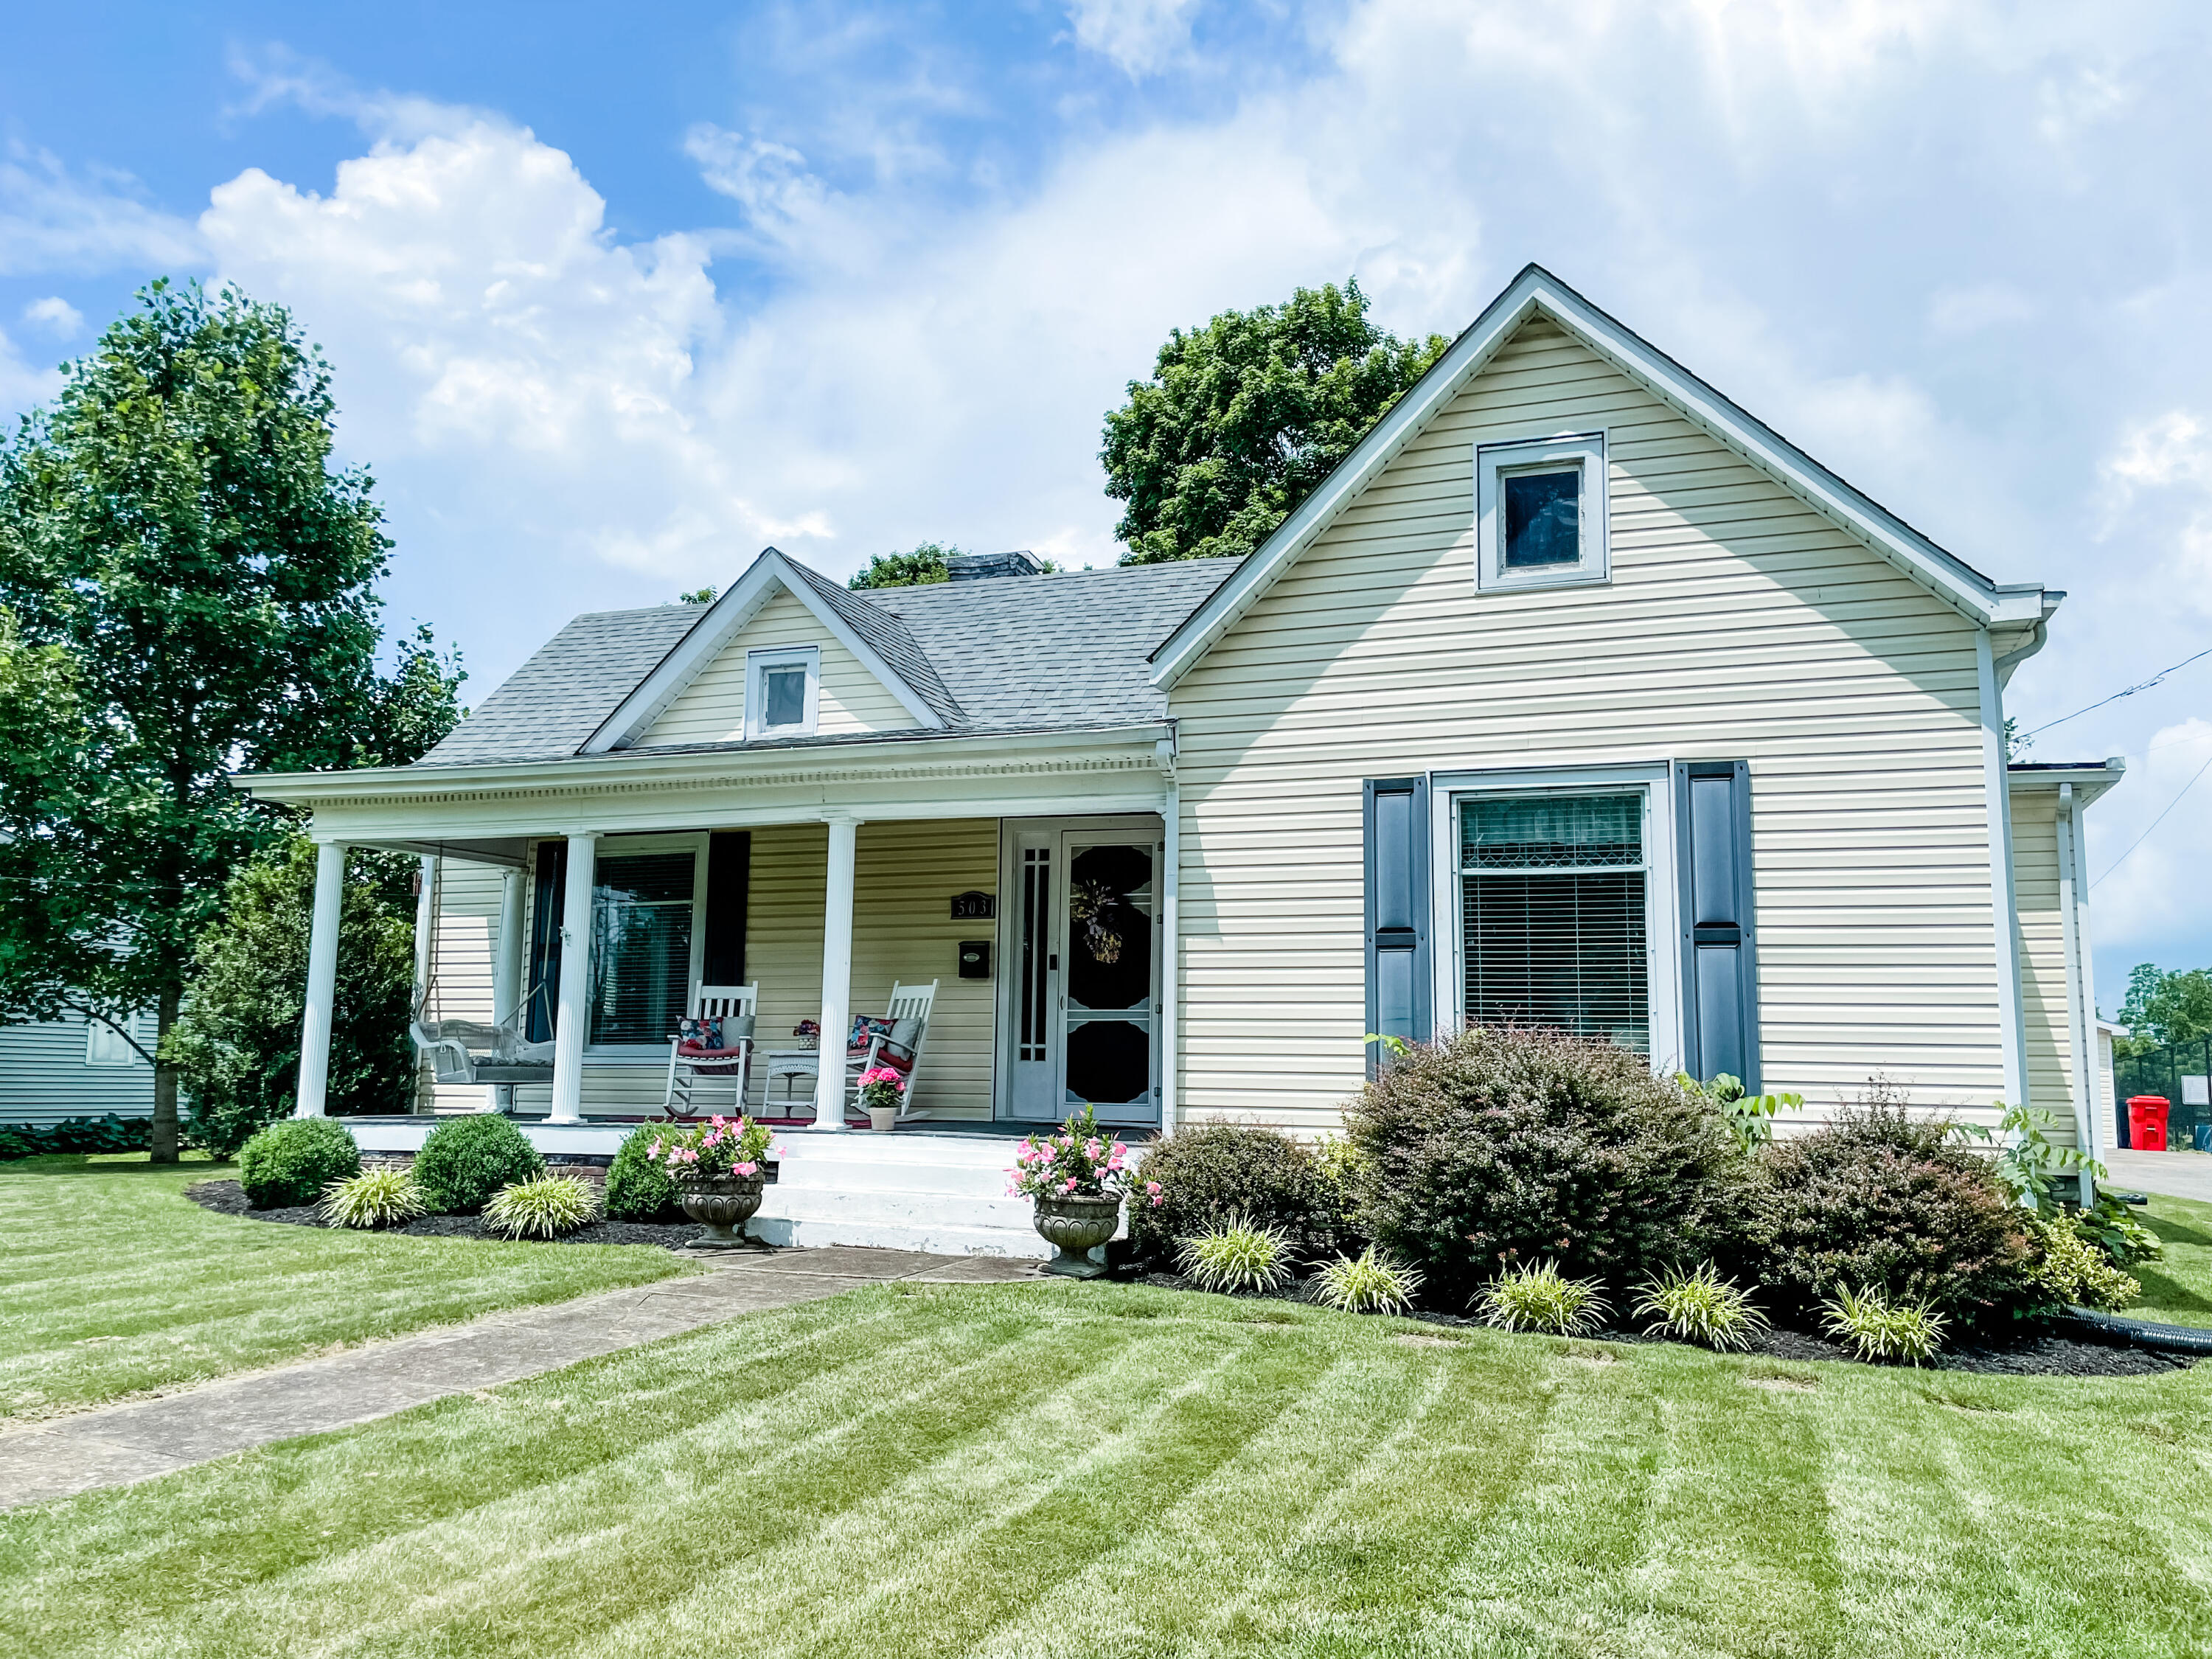 503 Central Avenue, Nicholasville, Kentucky 40356, 3 Bedrooms Bedrooms, ,2 BathroomsBathrooms,Residential,For Sale,Central,20111337